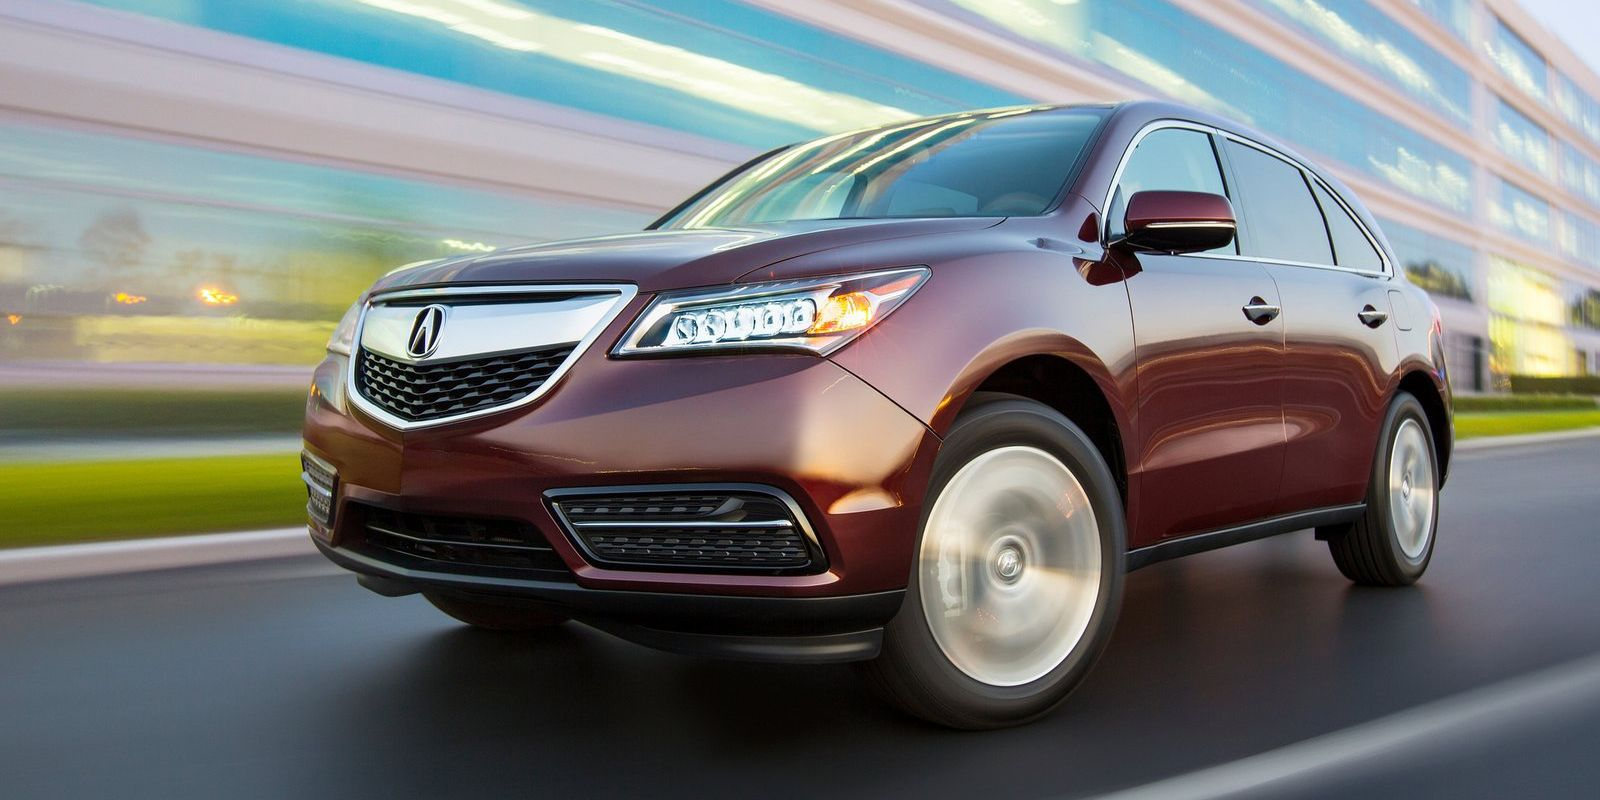 "<p>You can criticize Acura for its lack of inspiring sedans all you want, but you can't argue that Honda's luxury brand doesn't have the SUV formula down. The Lexus RX and Cadillac SRX beat the MDX in sales last year, <a href=""http://www.goodcarbadcar.net/2016/01/usa-luxury-suv-crossover-sales-figures-december-2015-year-end.html"" target=""_blank"">but that was it</a> in the midsize luxury SUV segment. We doubt speed was a factor for most buyers, but for a mostly uninspiring crossover, <a href=""http://www.caranddriver.com/acura/mdx"" target=""_blank"">its 5.9-second 0-60 time</a> is much faster than we expected.</p>"